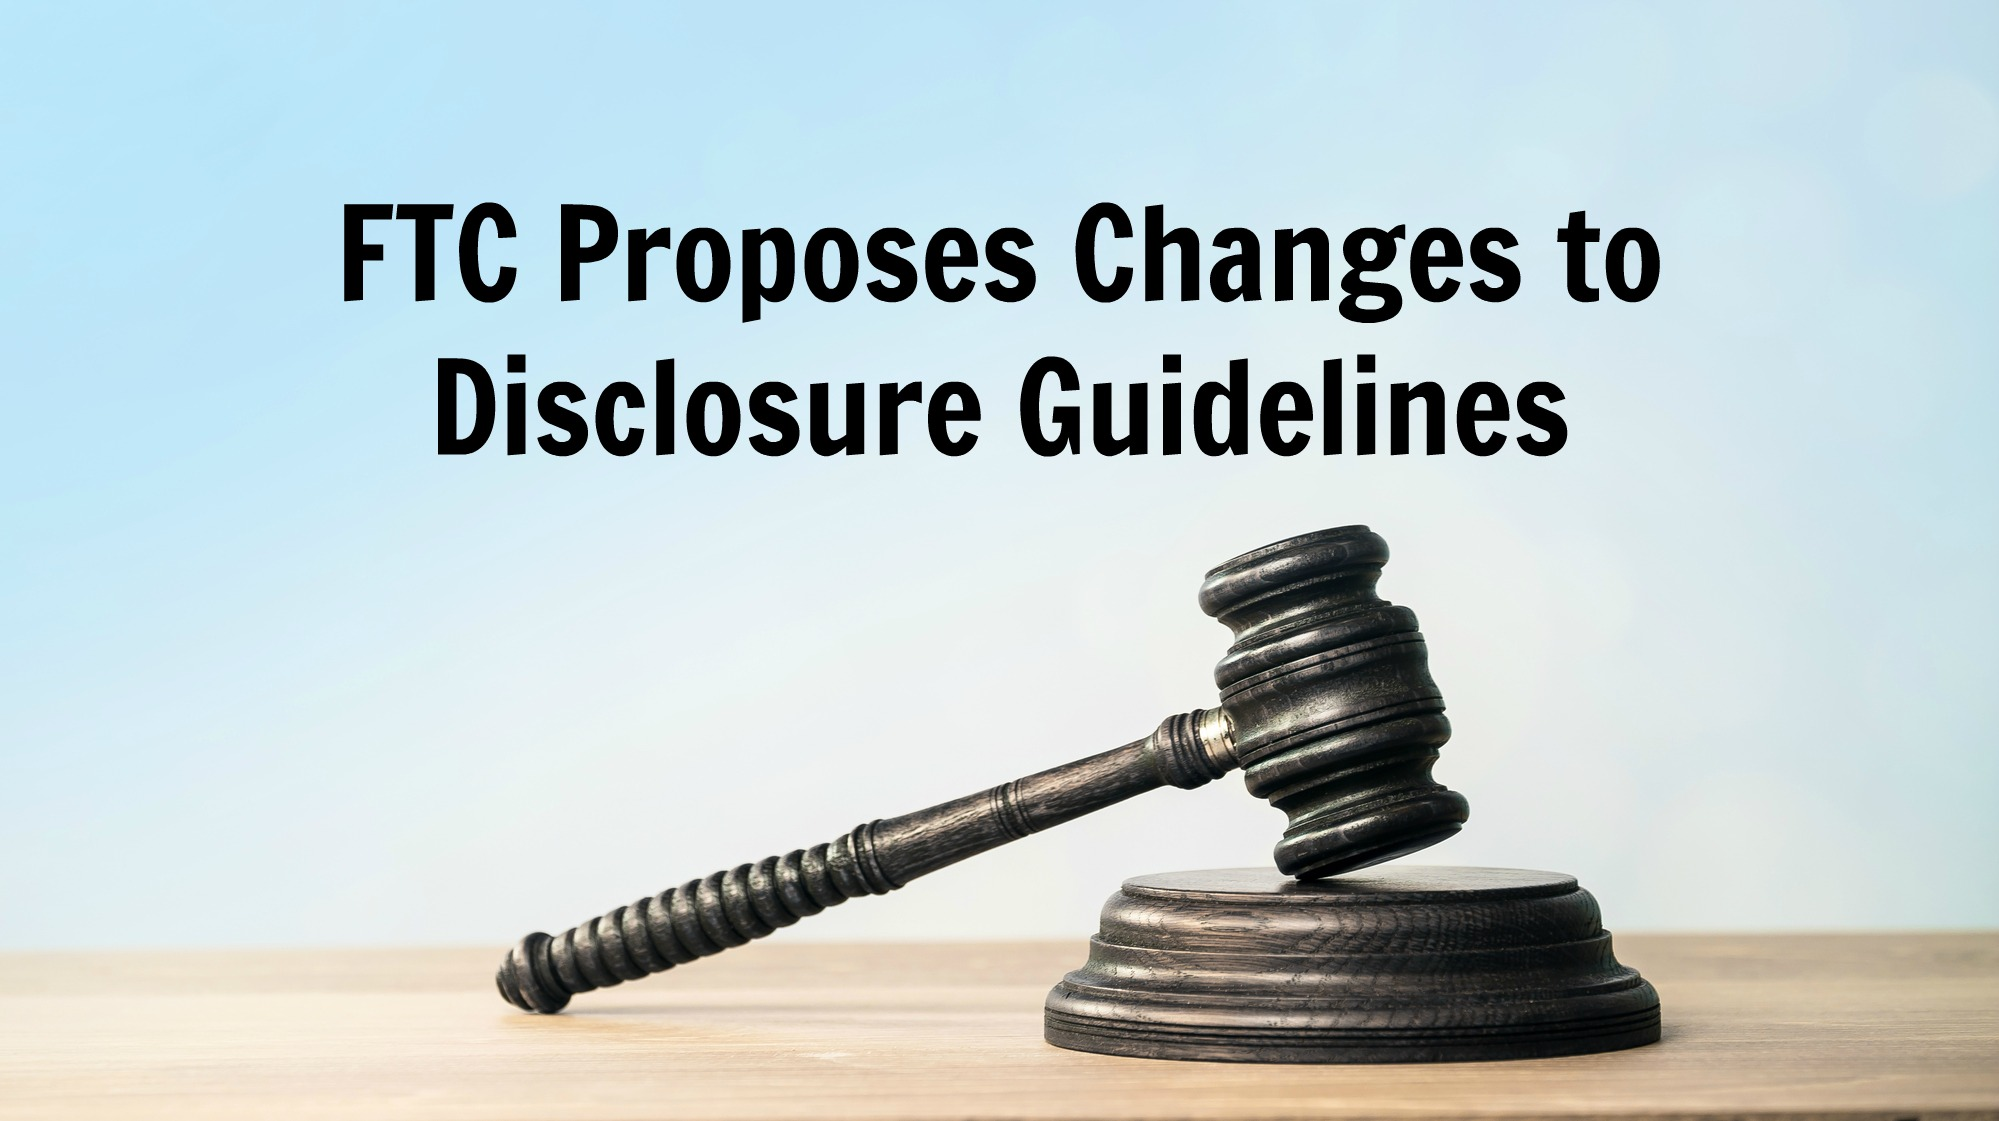 FTC Disclosure Changes